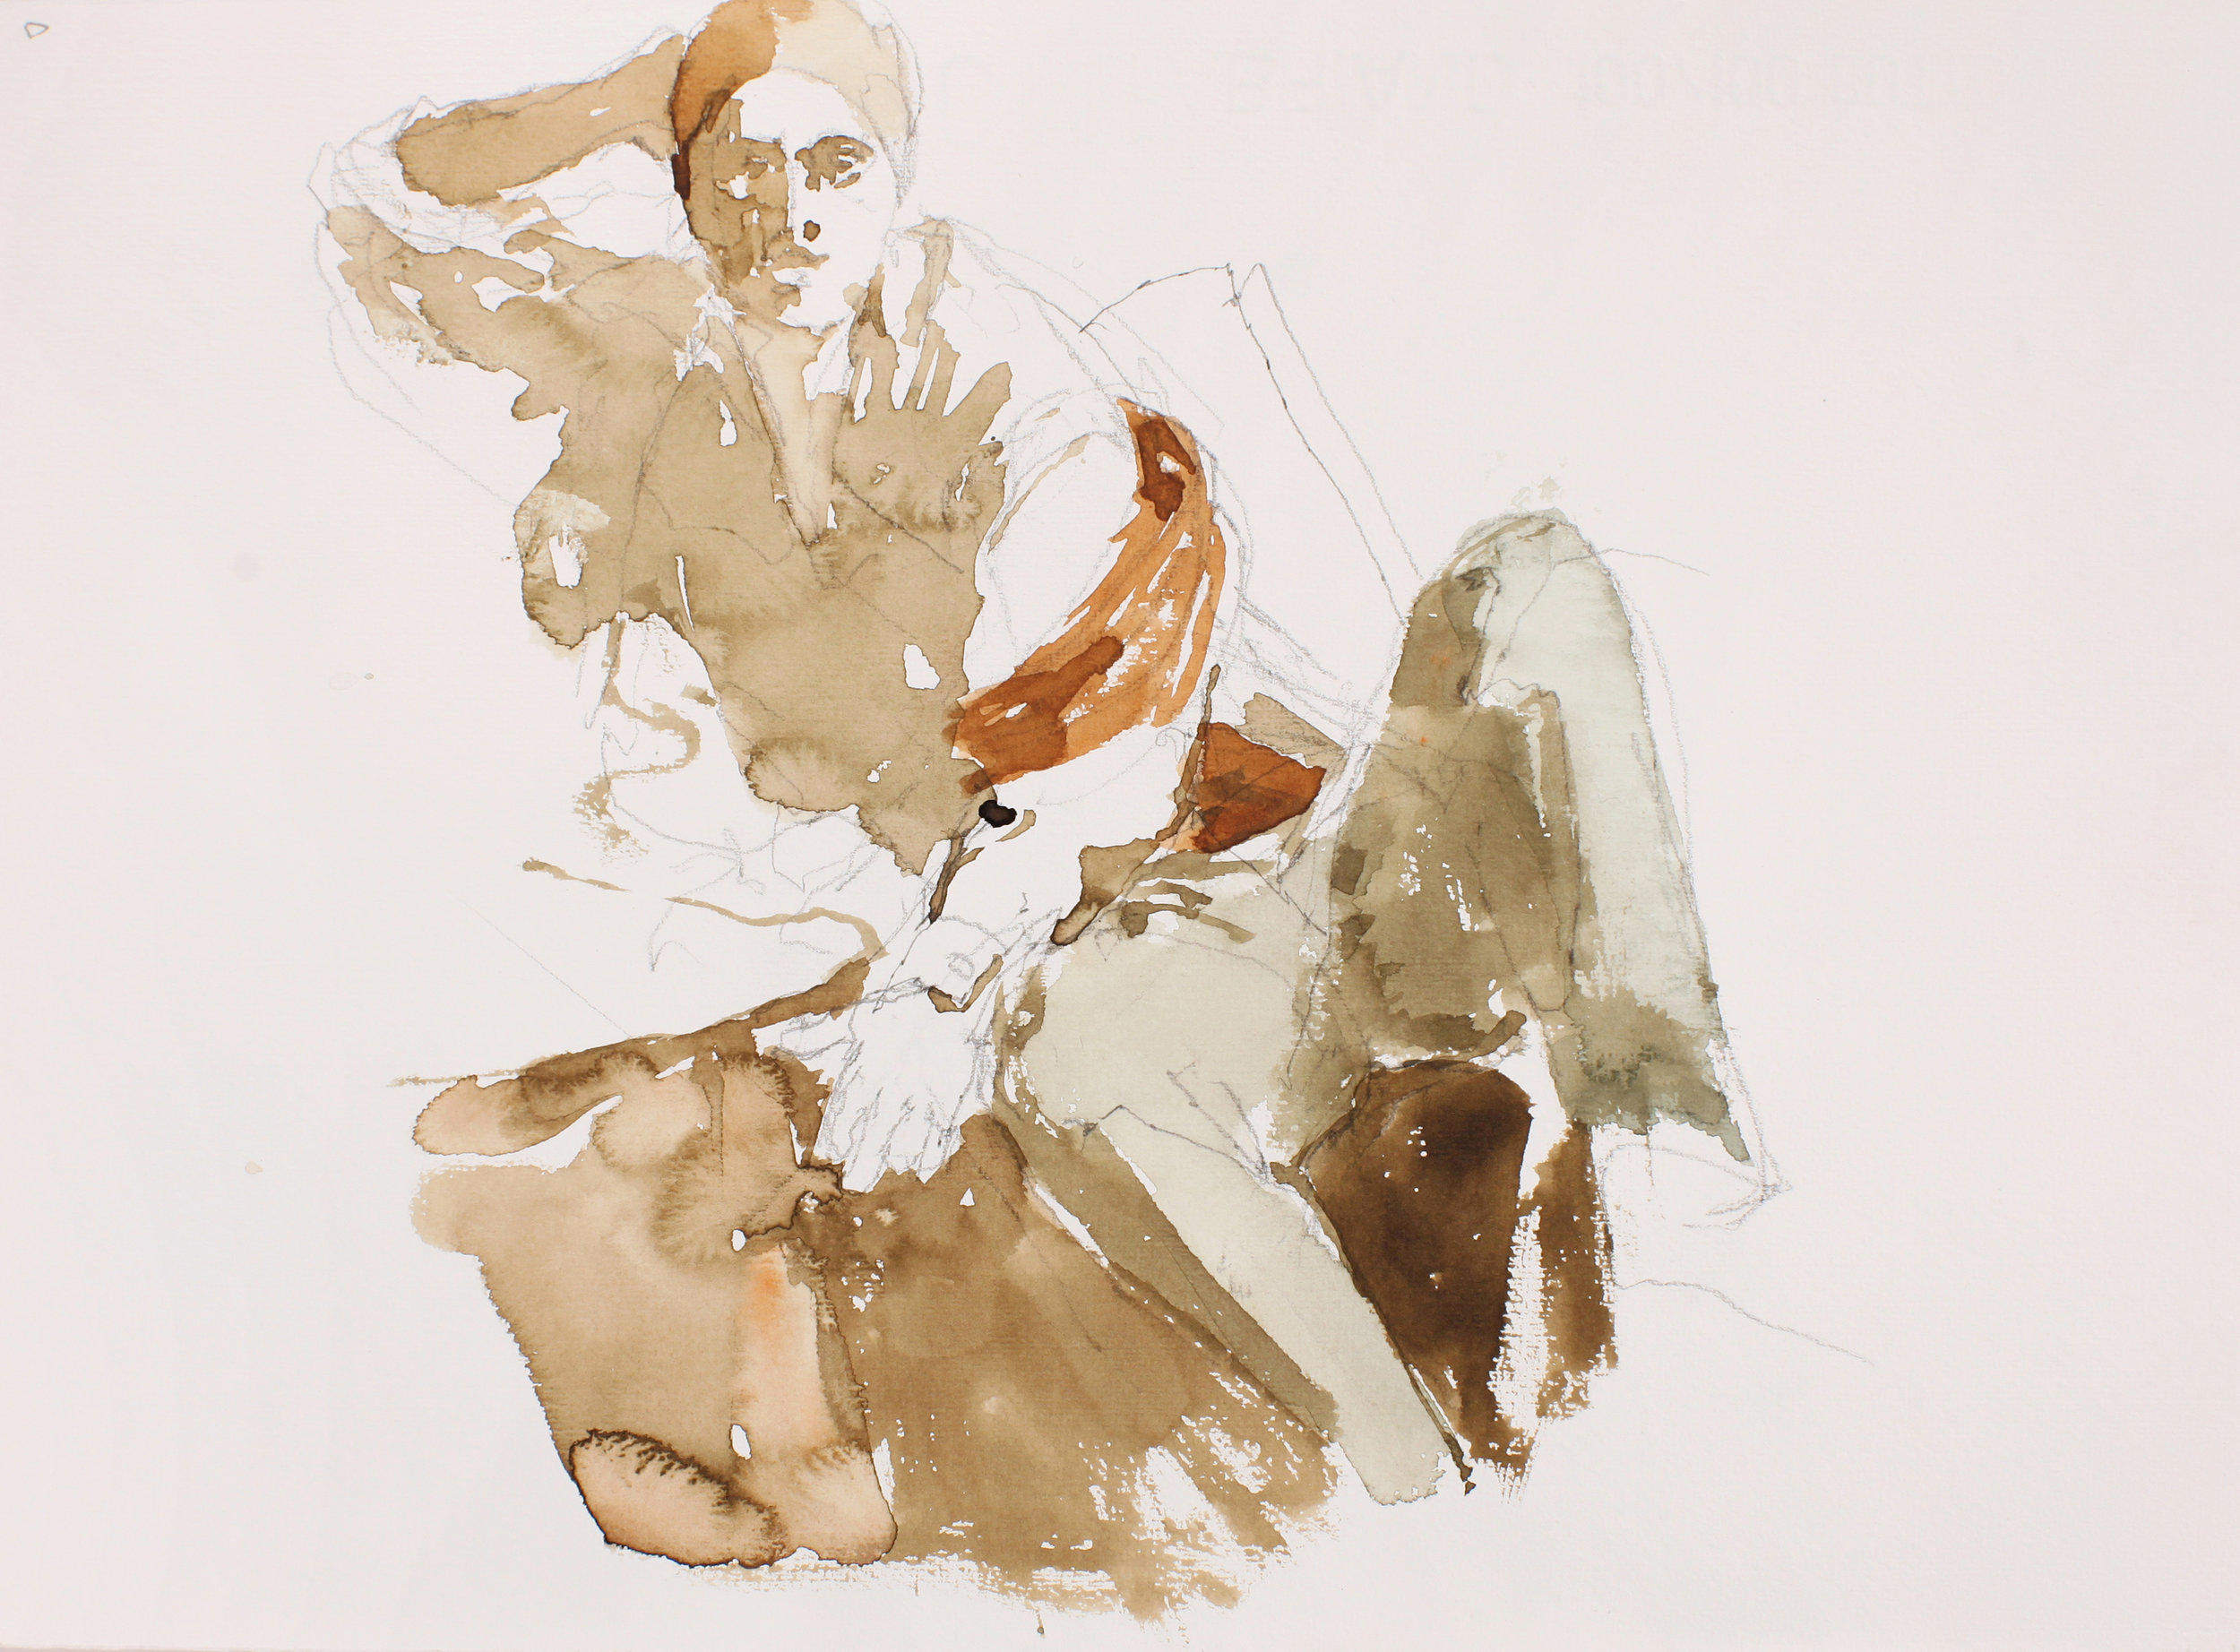 2005_Seated_Figure_with_Scarf_Around_Right_Arm_and_Hand_at_Back_of_Head_watercolour_and_pencil_on_paper_11x15in_WPF320.jpg